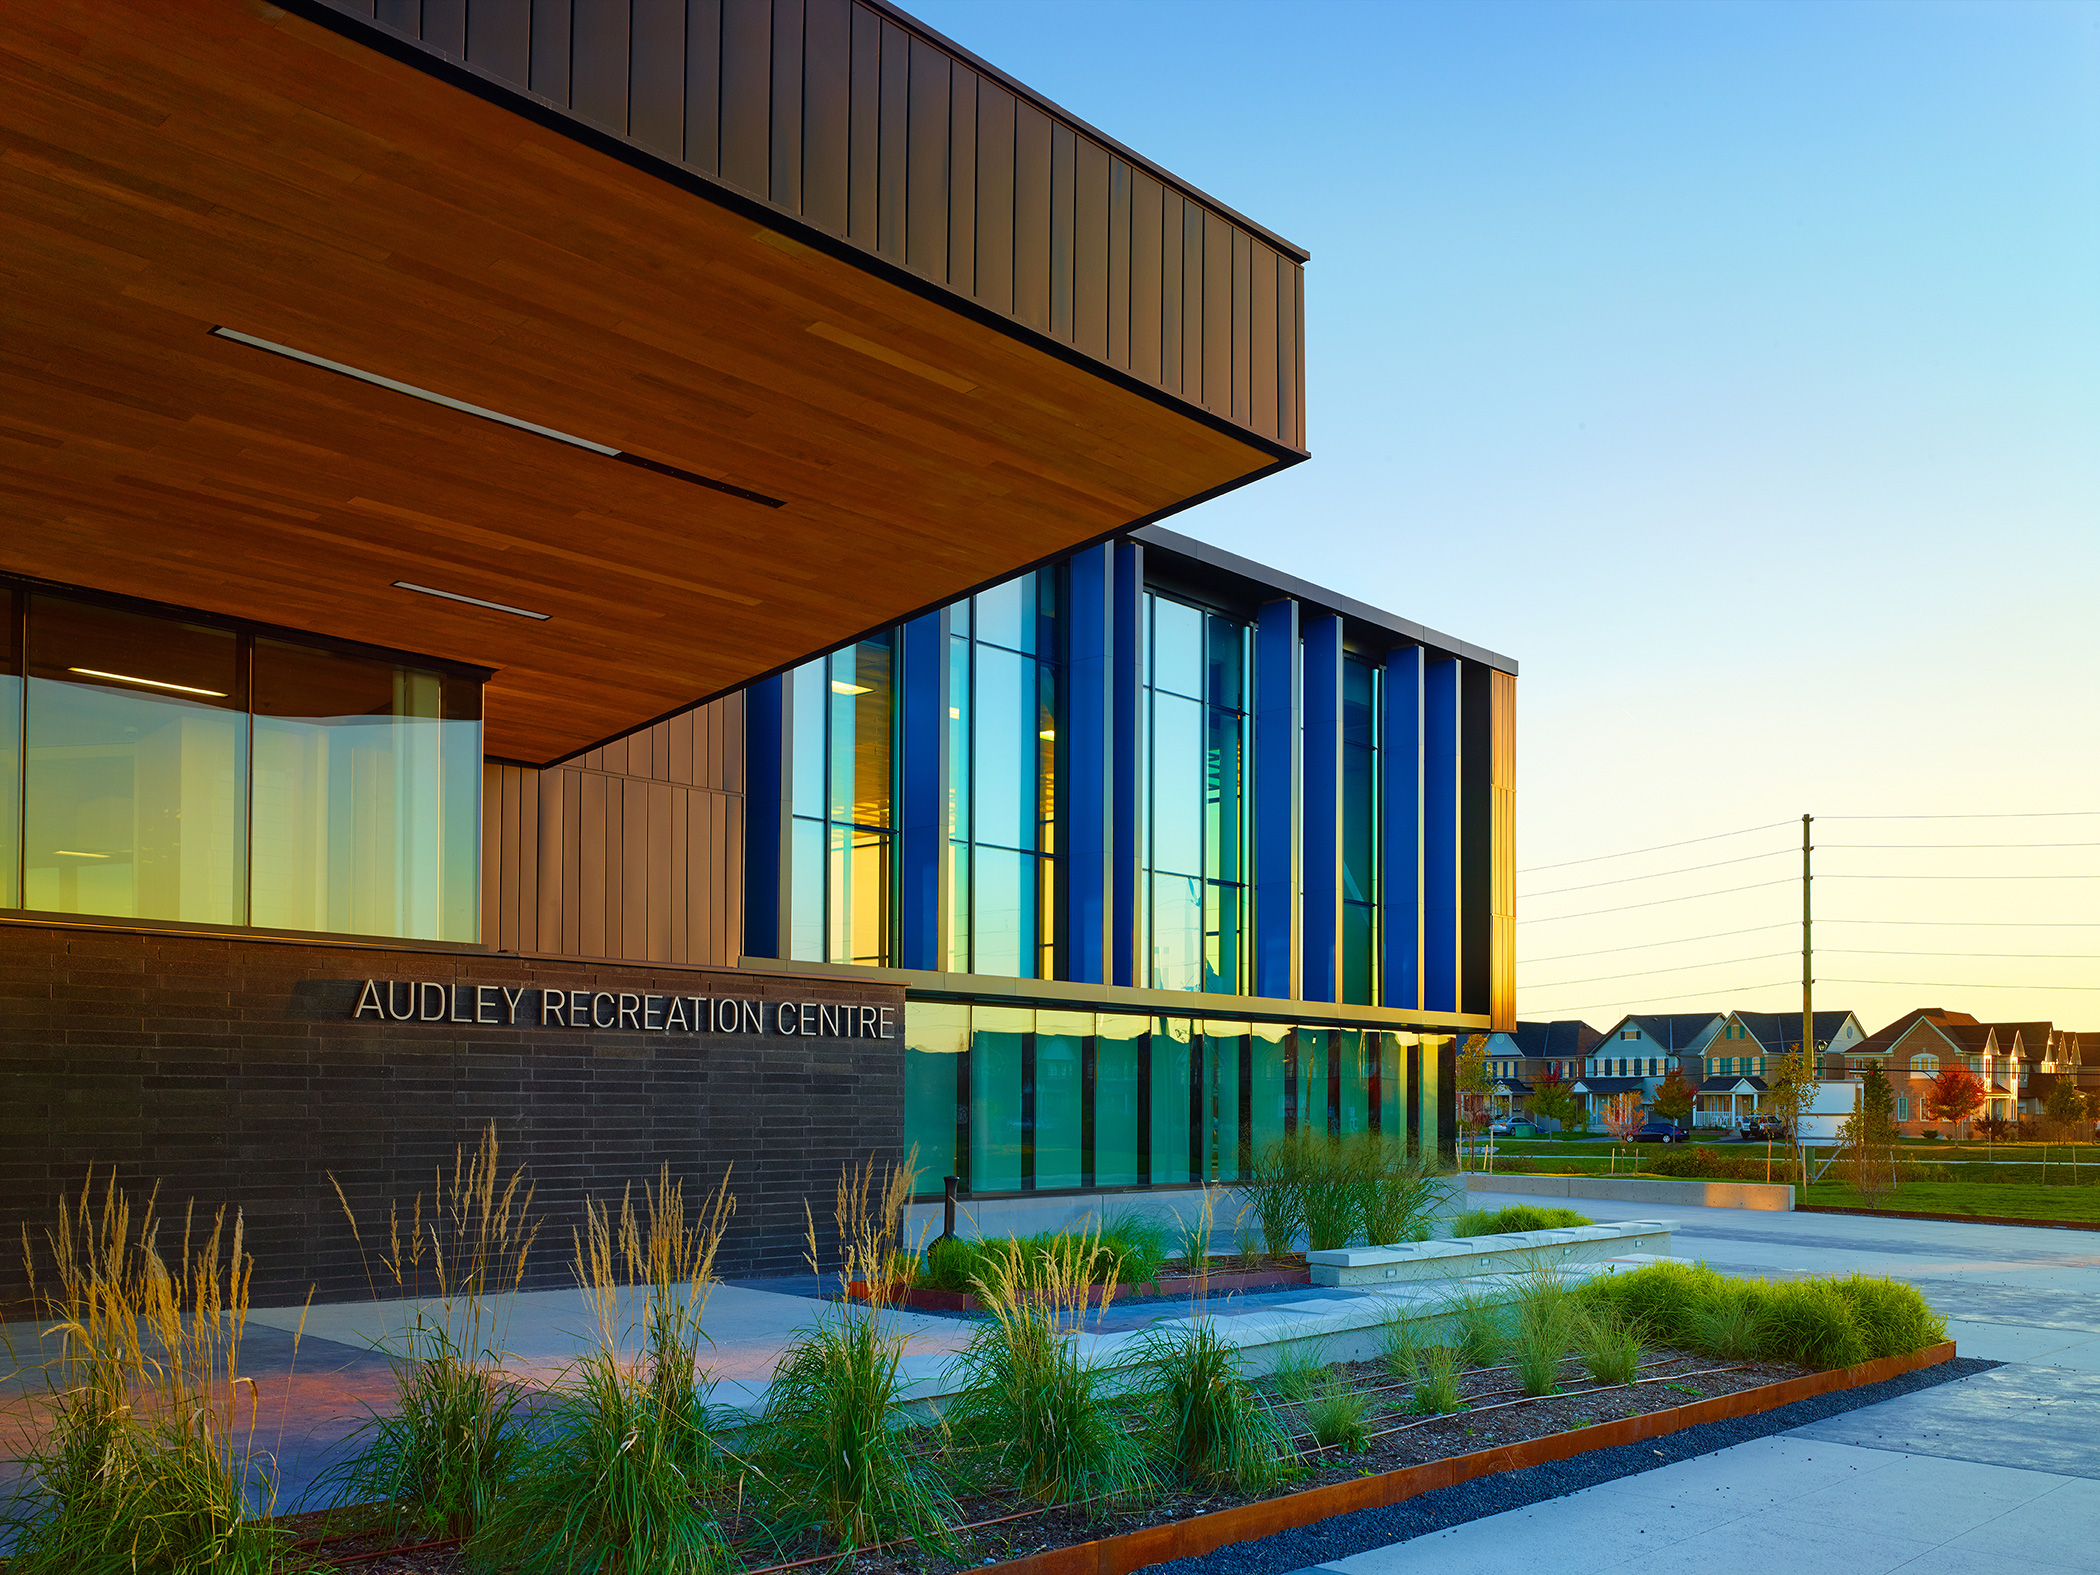 Audley Recreation Centre. Photo: Shai Gil